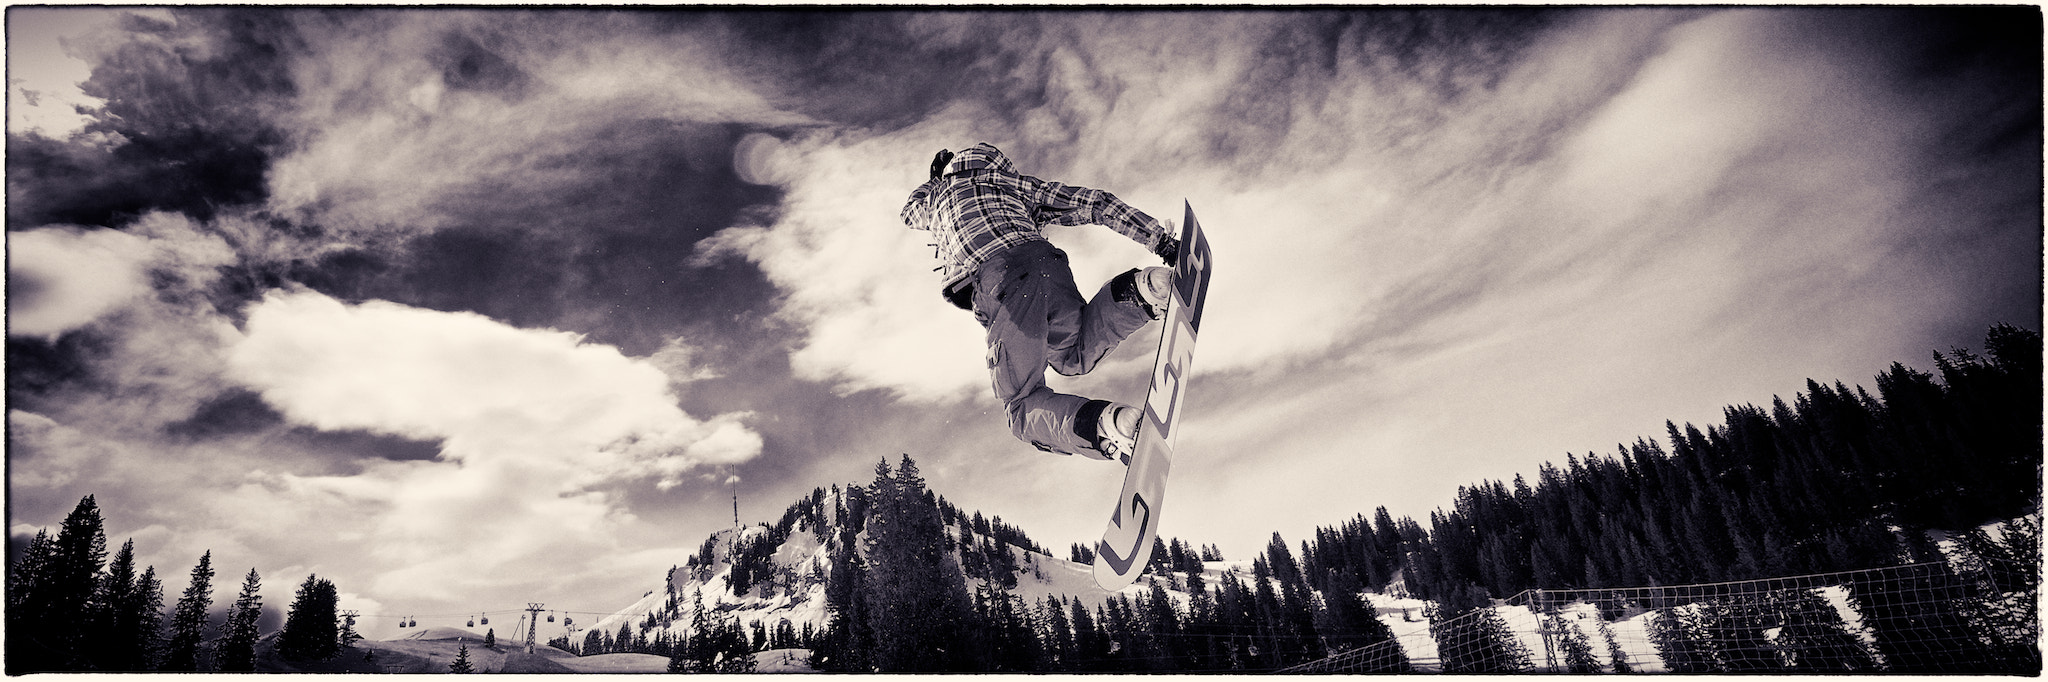 Photograph Snowboard, Michel Keul by Emily Wergifosse on 500px